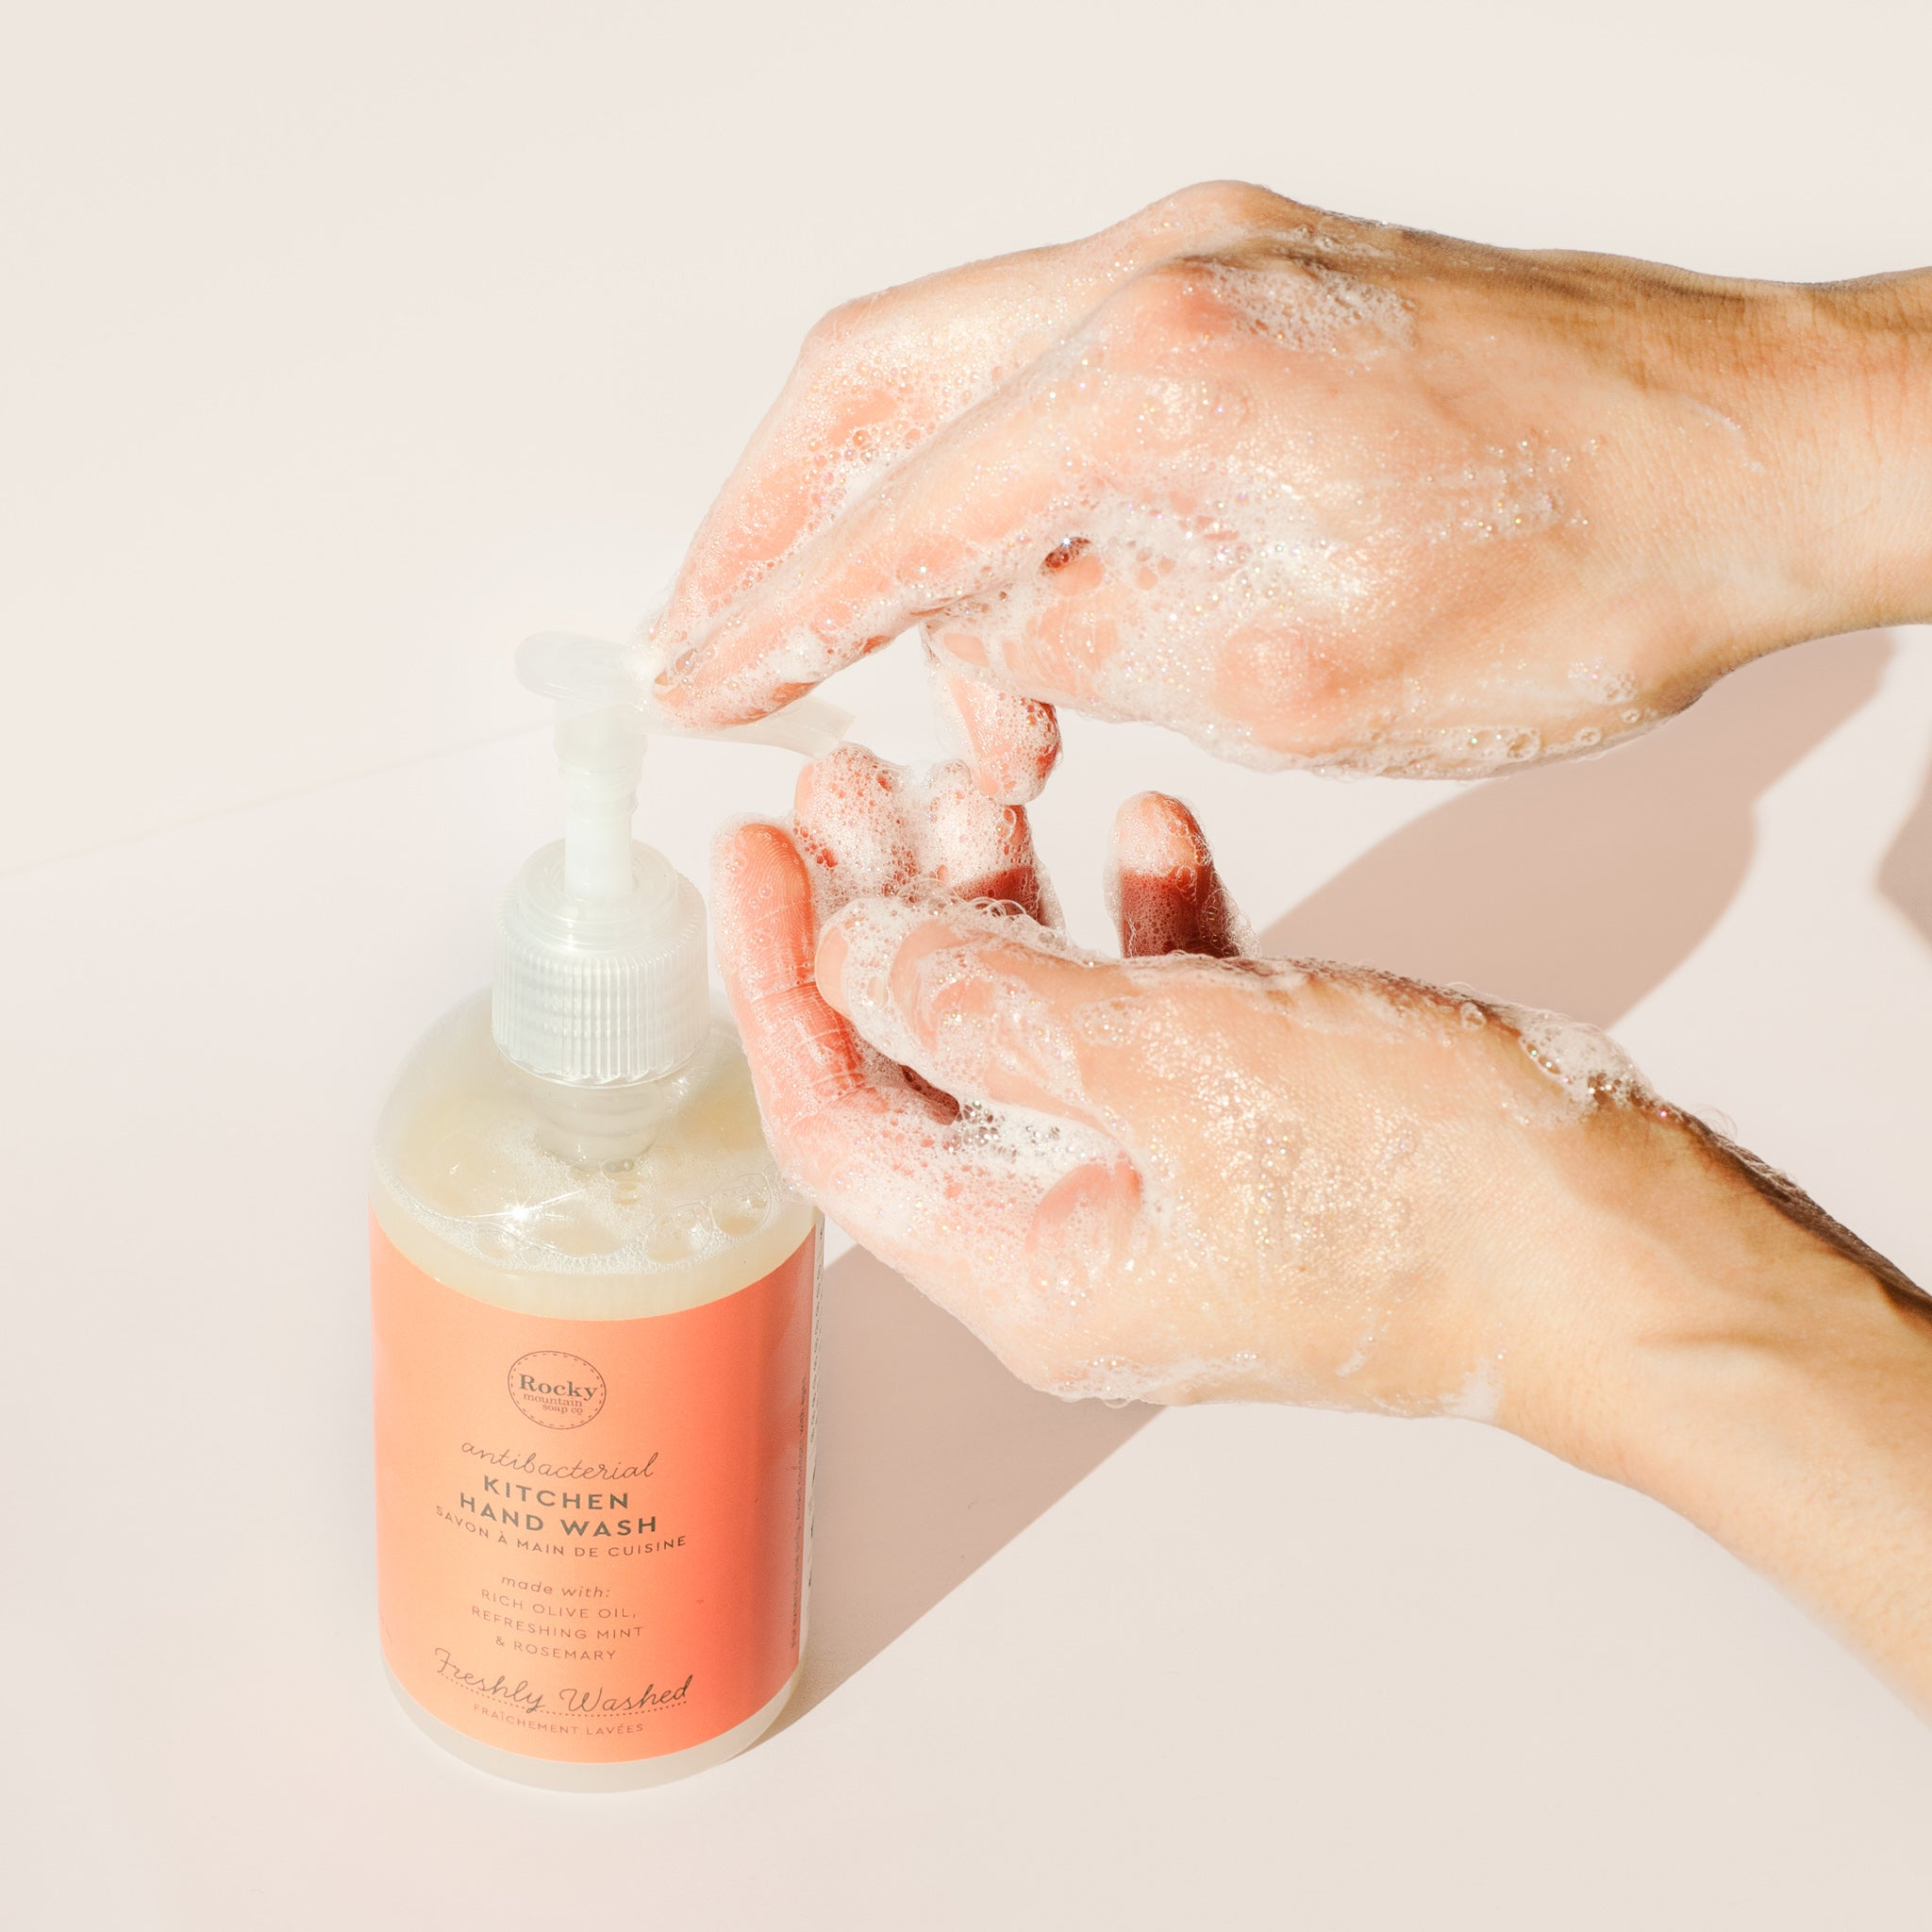 Image of hands washing with lather pumping antibacterial liquid soap from Rocky Mountain Soap Campany Kitchen Hand Wash.